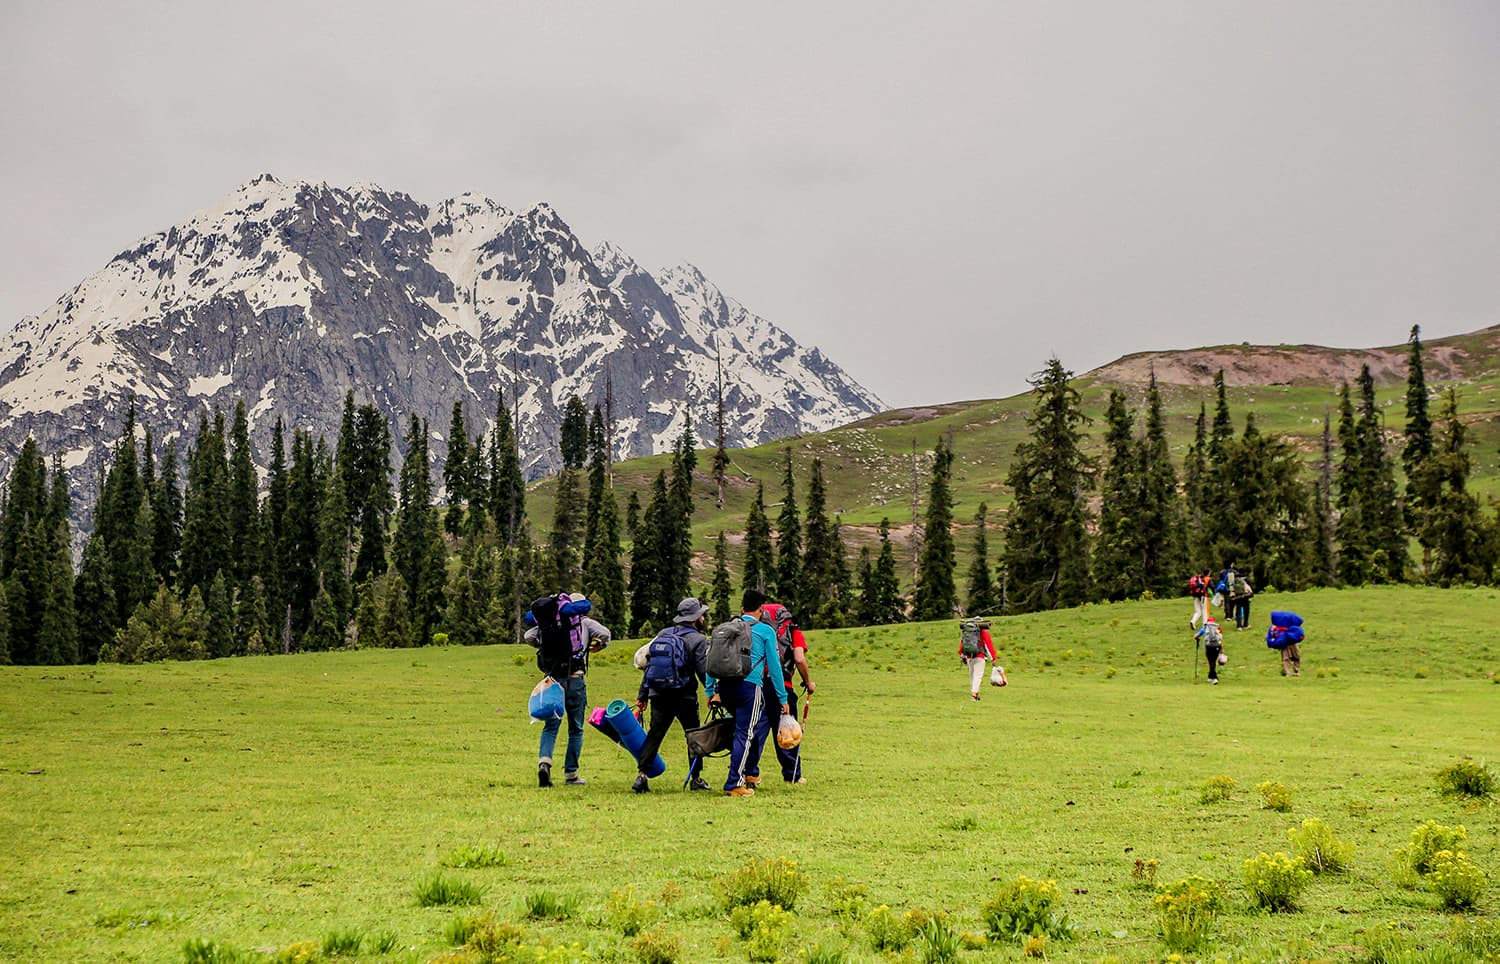 Trekkers walk through Chinaitshing meadows towards the base camp of Izmis lake. ─ Photo by author